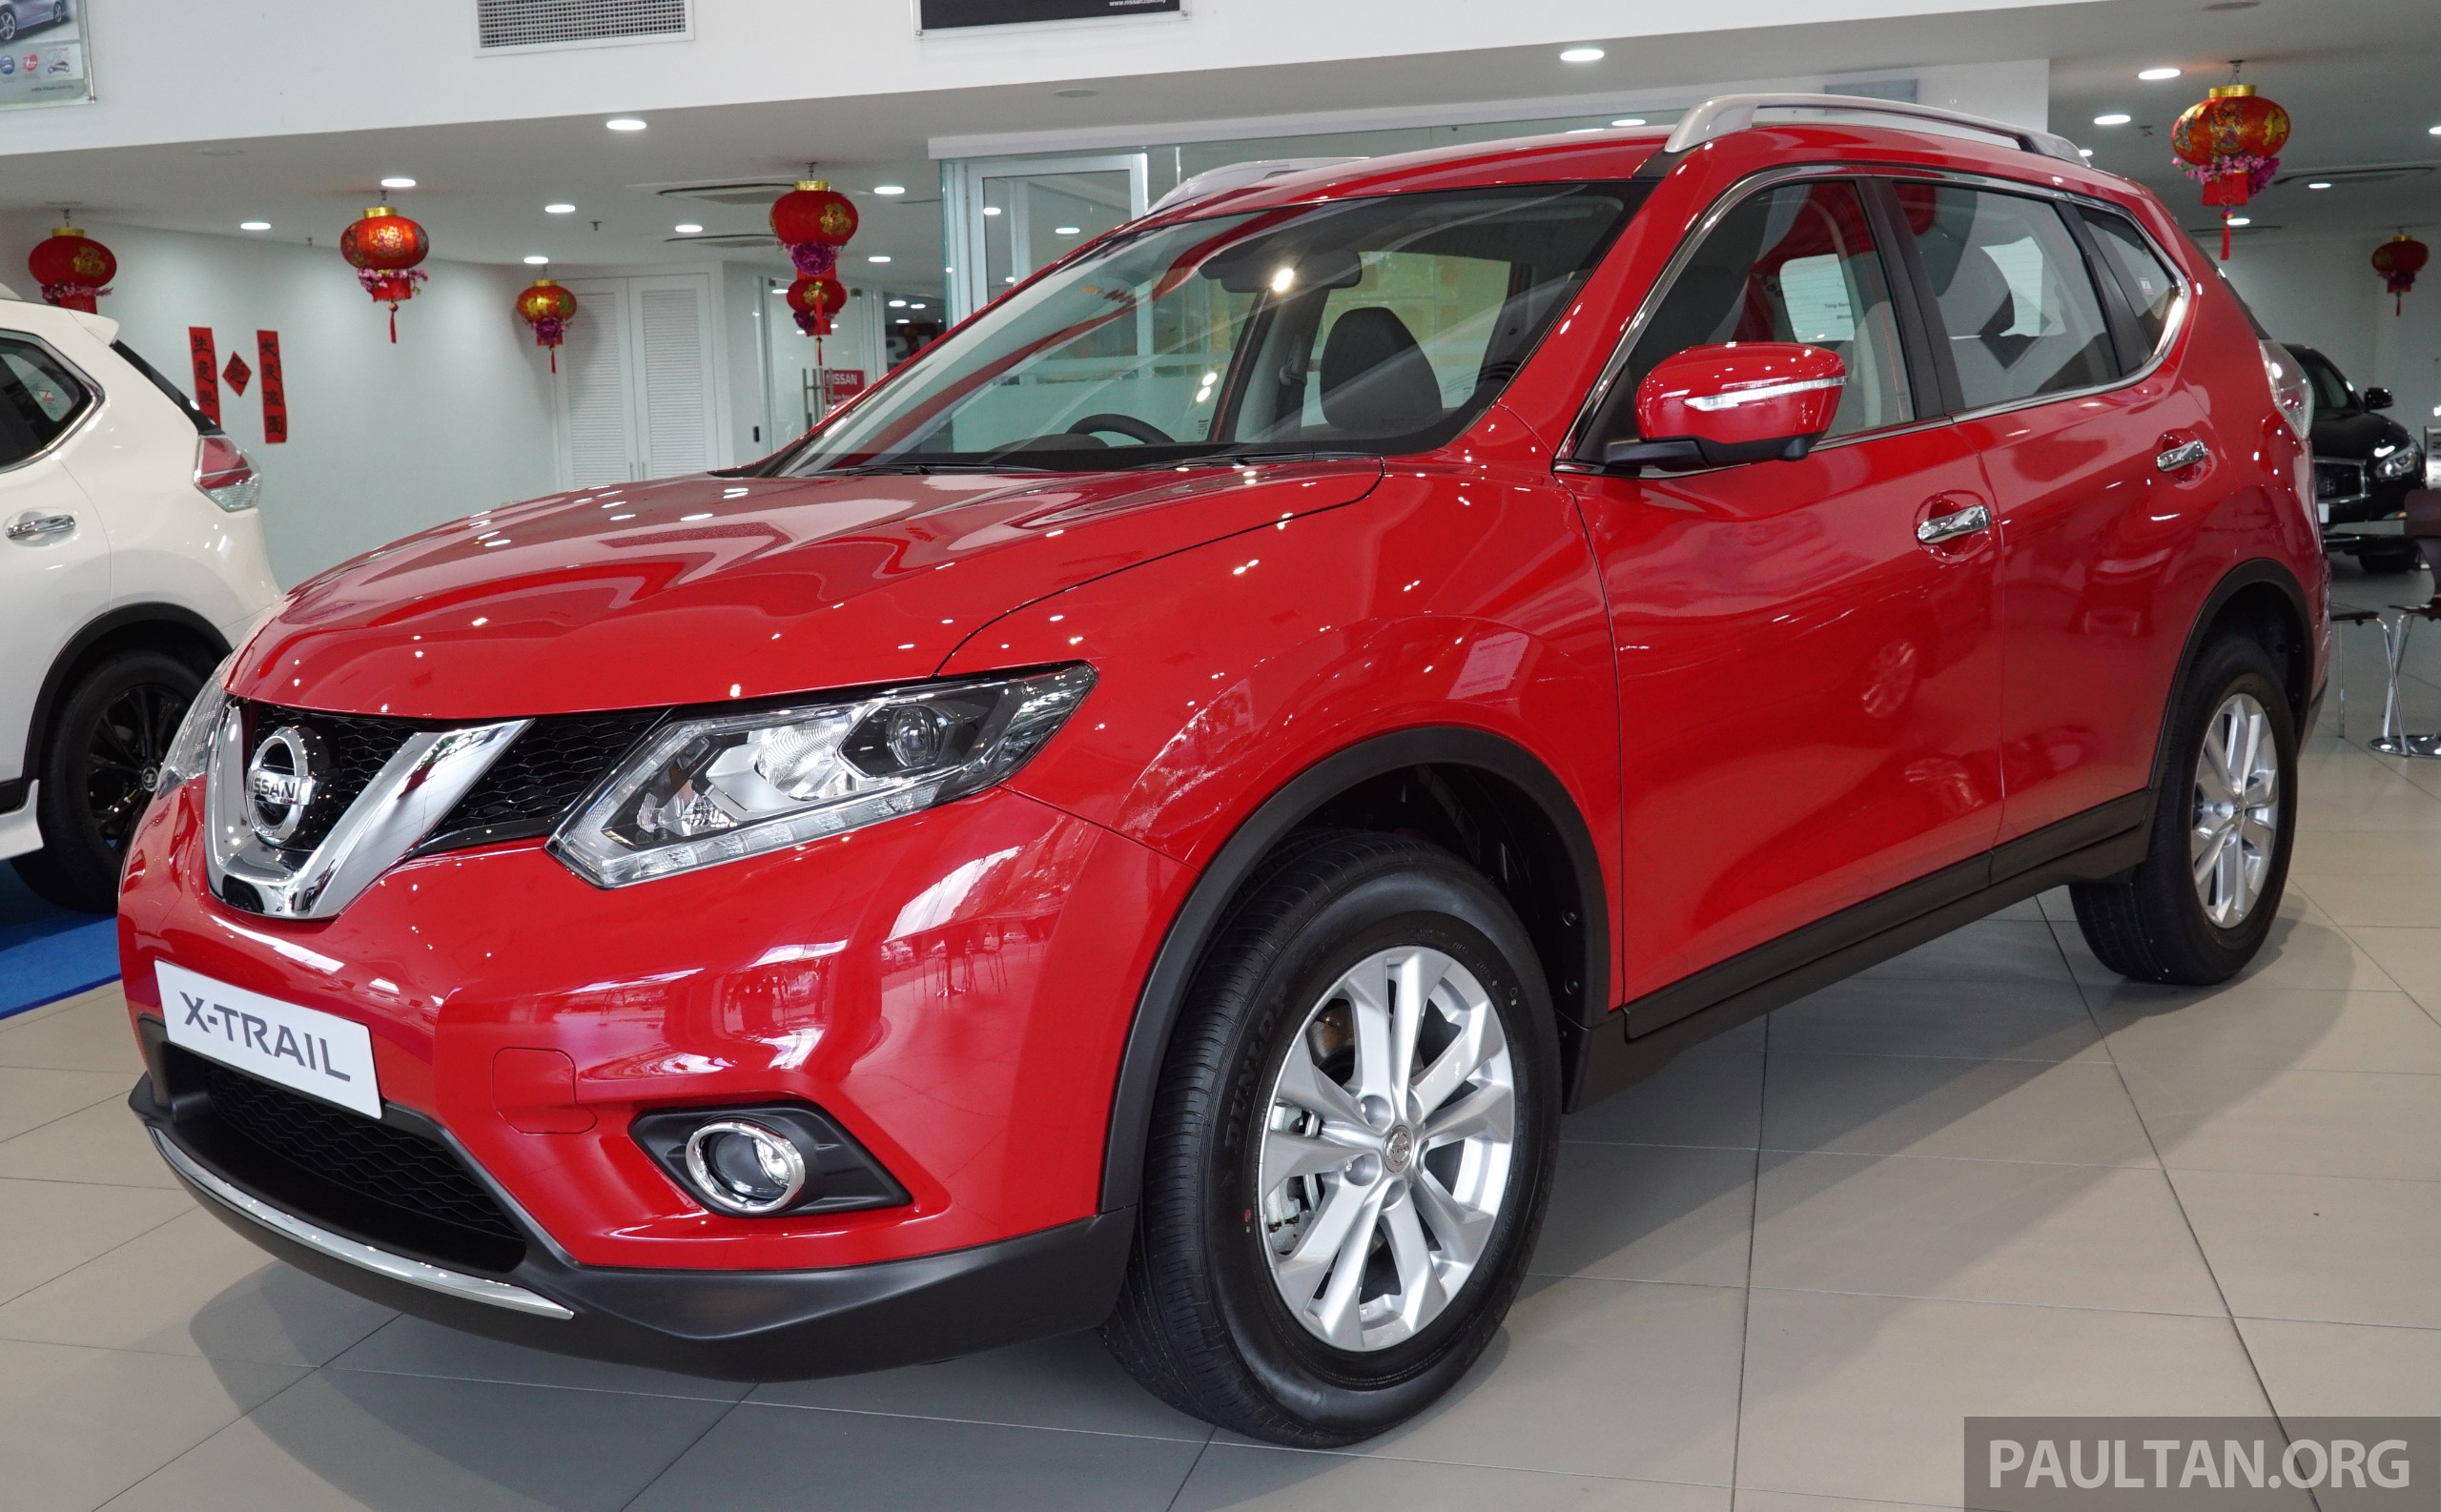 nissan x trail now available in flaming red for cny. Black Bedroom Furniture Sets. Home Design Ideas